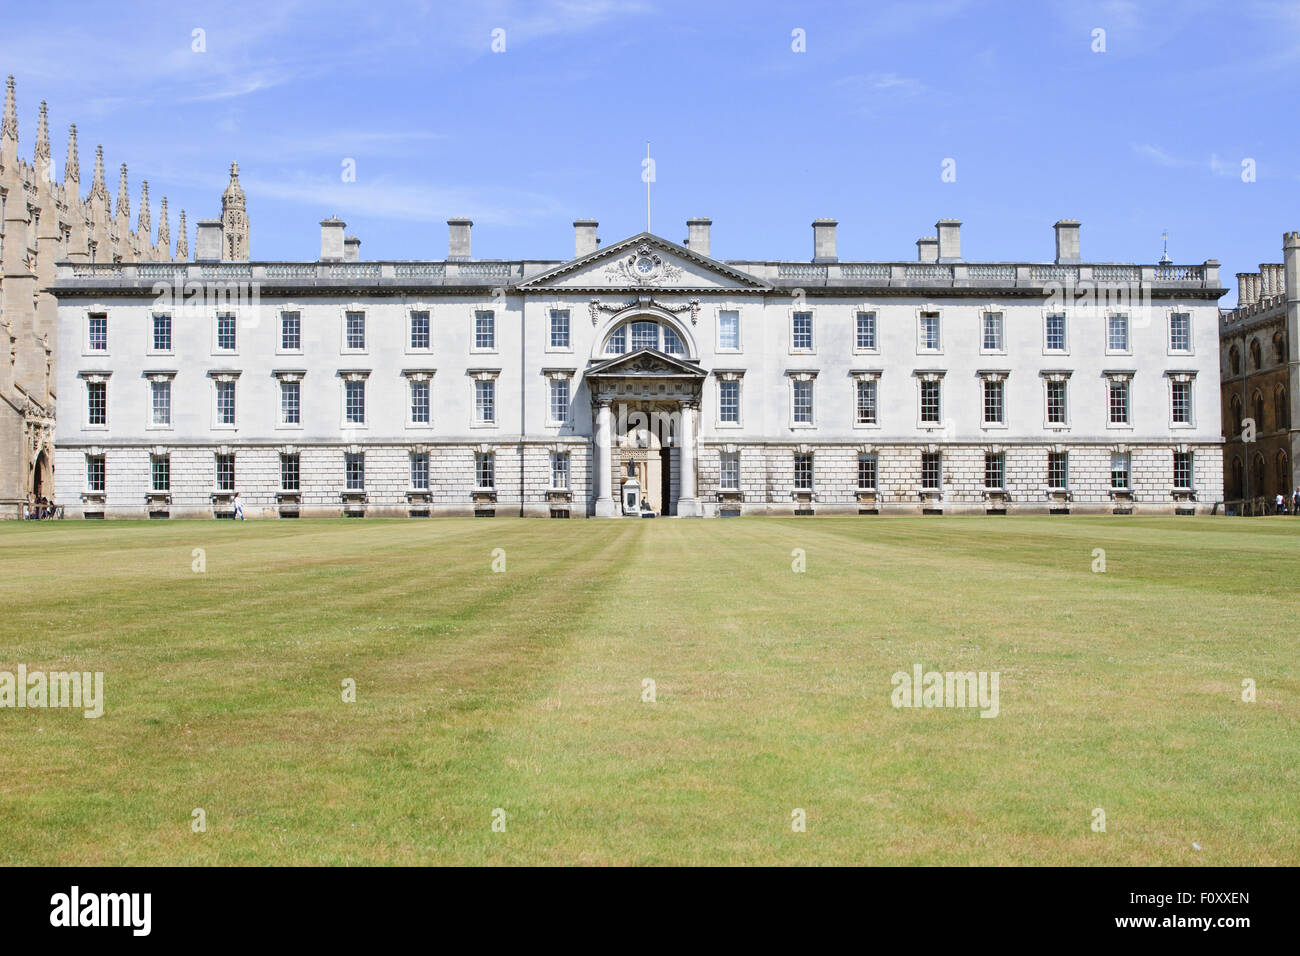 The Fellows' Building, King's College, Cambridge. - Stock Image